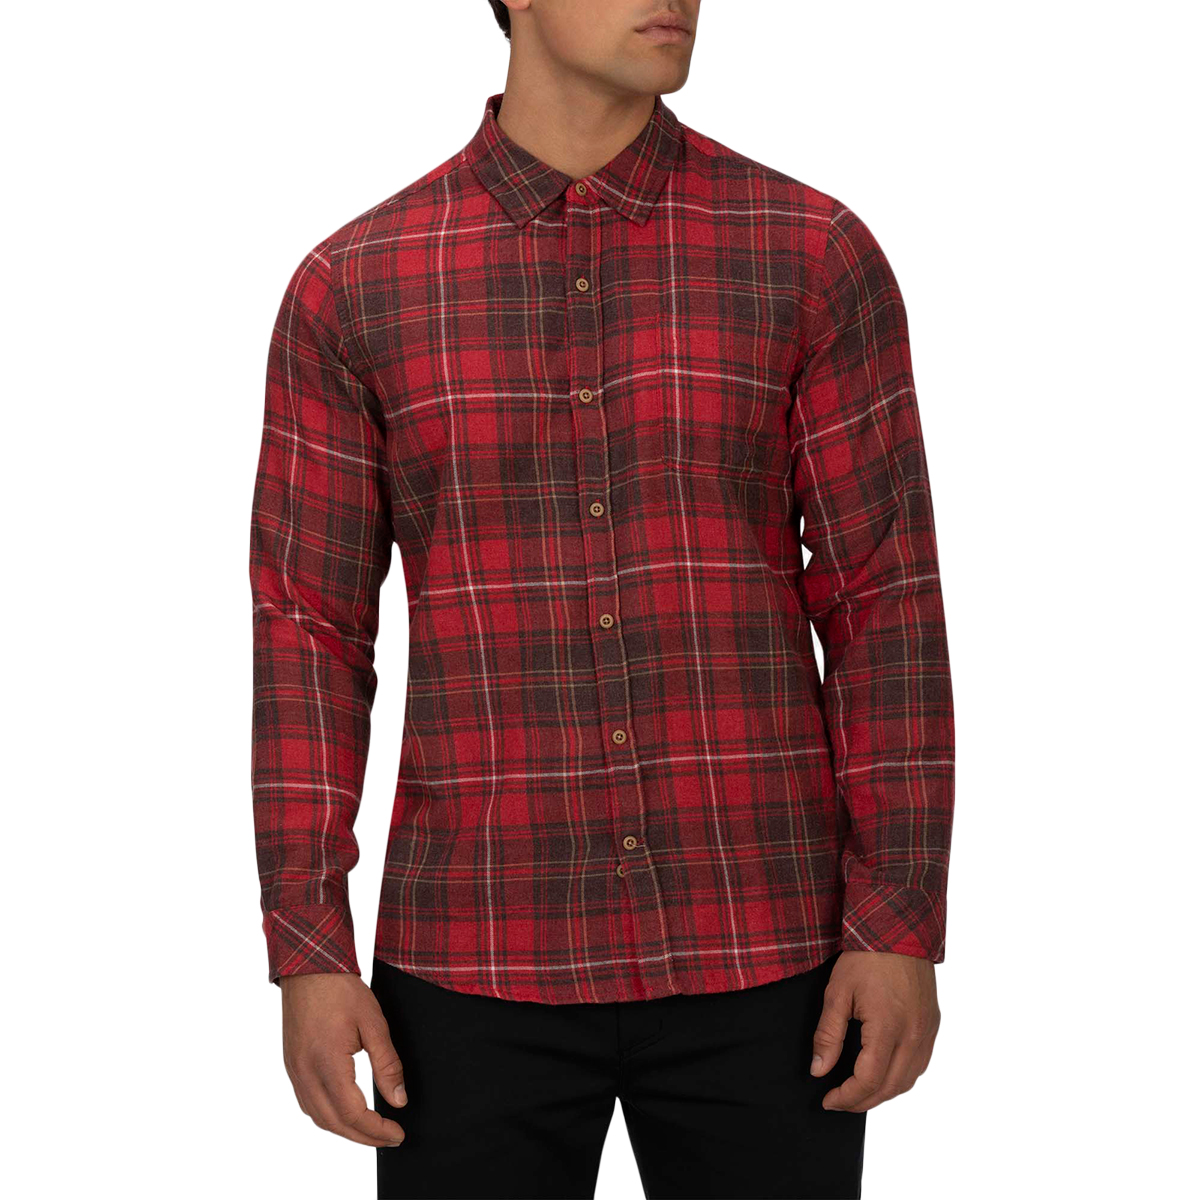 Hurley Men's Vedder Washed Long-Sleeve Shirt - Red, XL